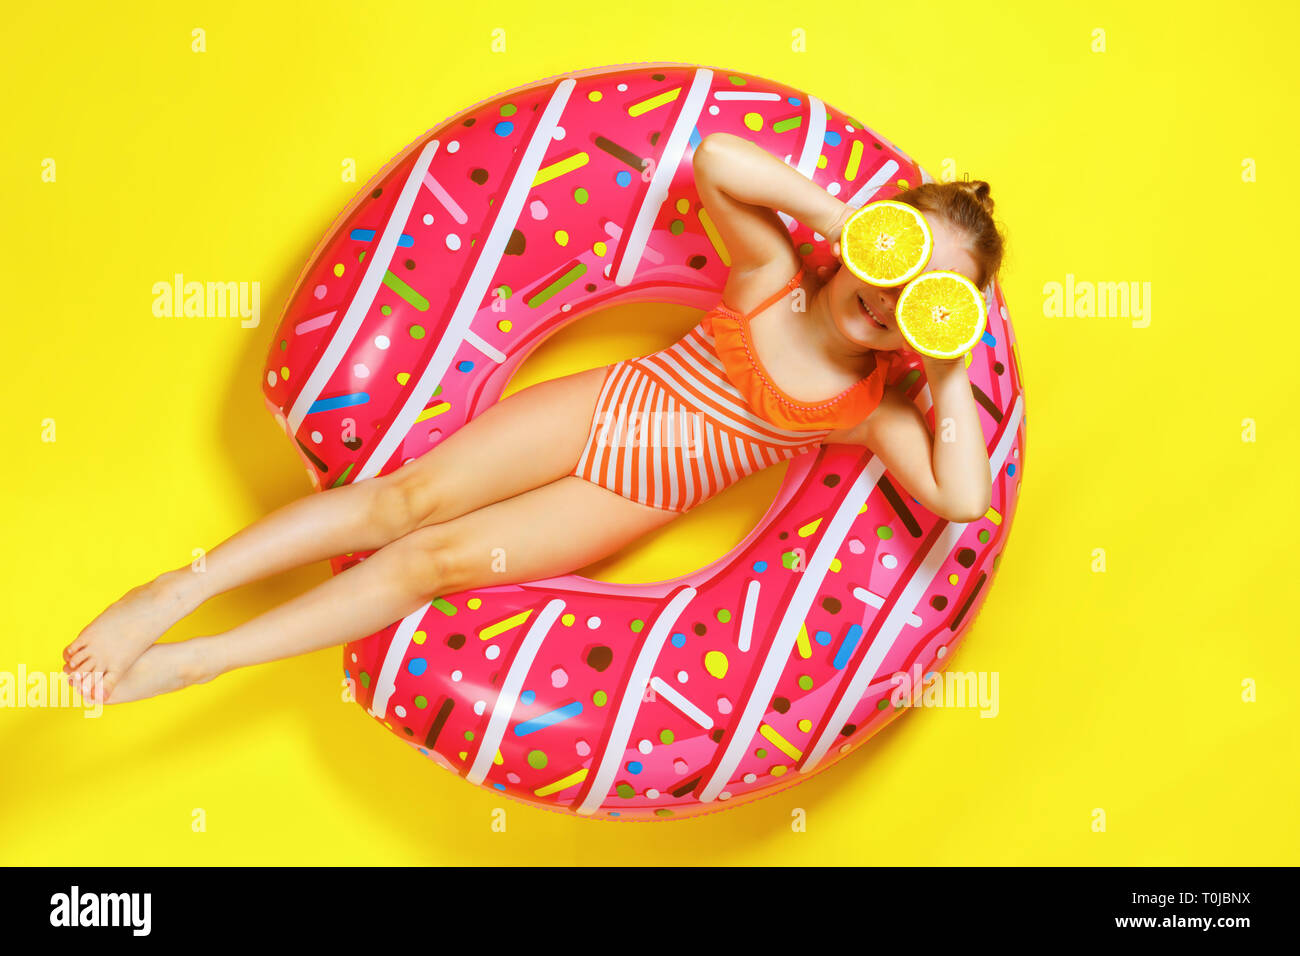 A little child girl in a swimwear suit lying on a donut inflatable circle. Yellow background. Top view. Summer concept. - Stock Image